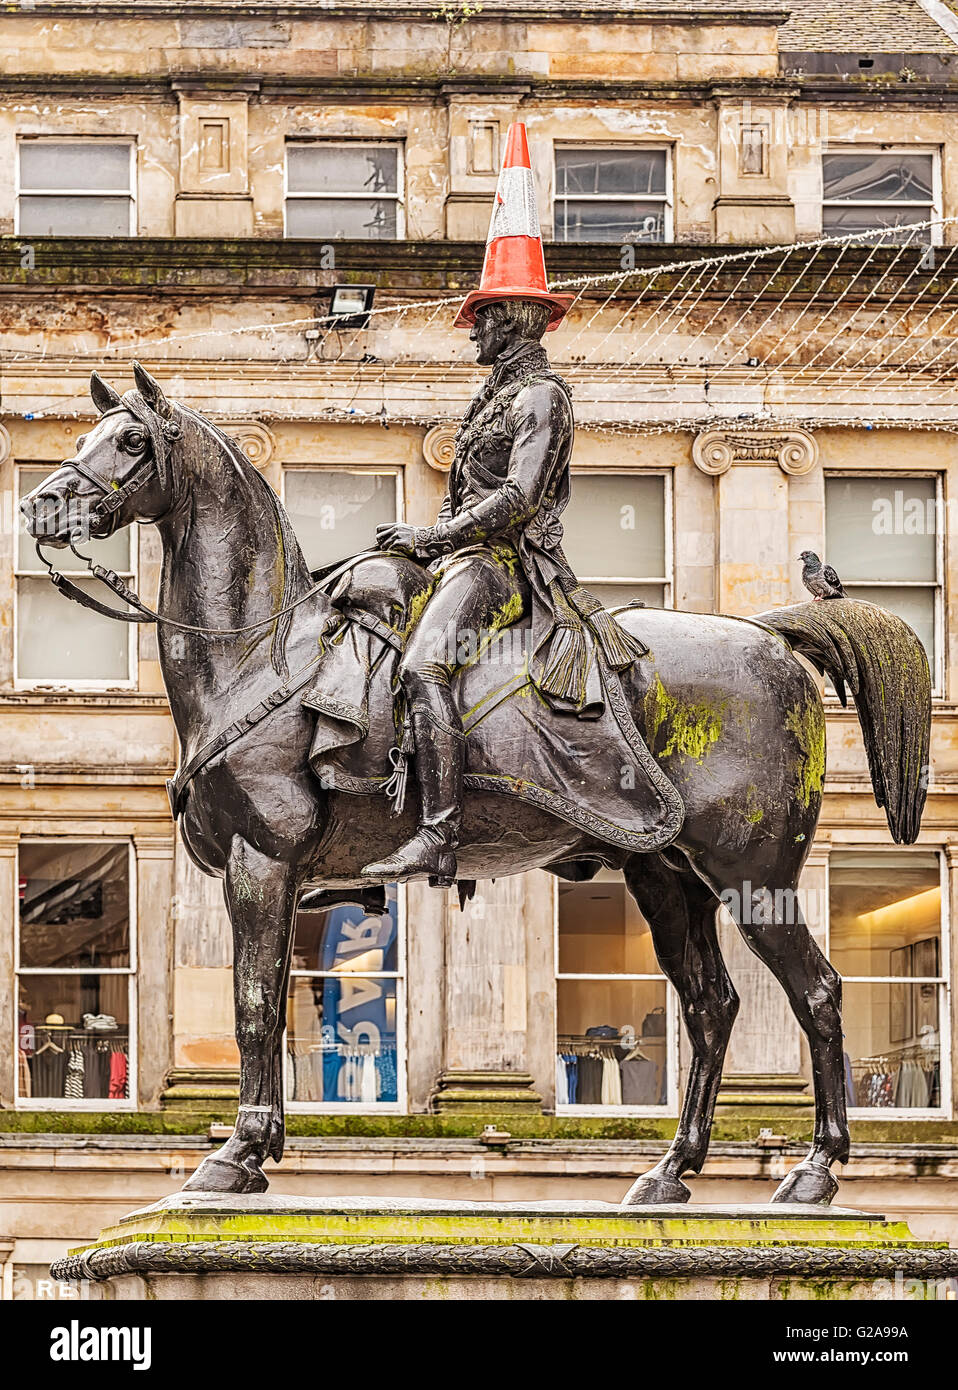 The Duke of Wellington statue in Glasgow, Scotland with its customary traffic cone on its head. - Stock Image